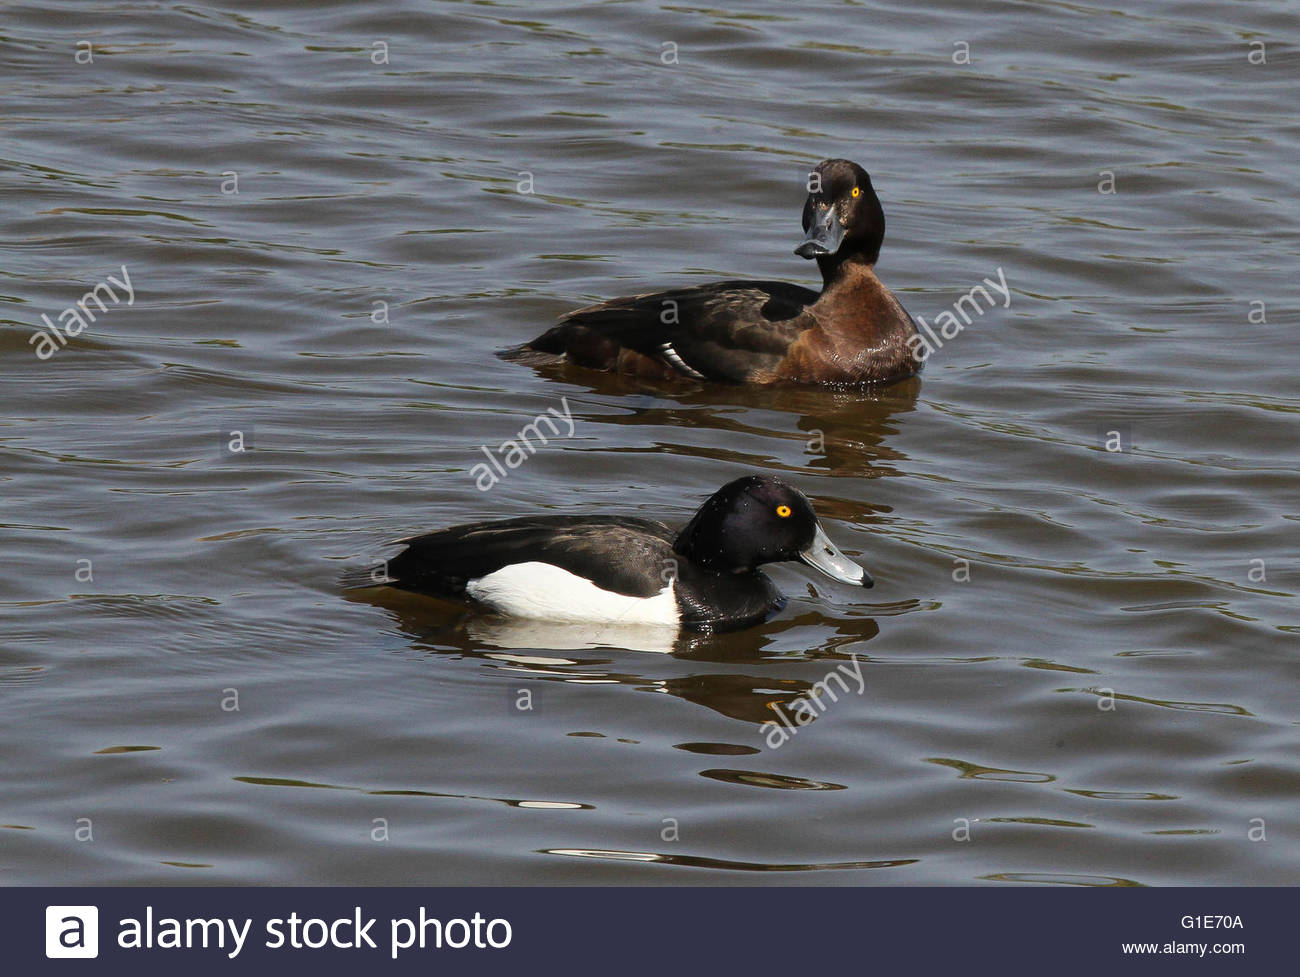 Castle Espie Wildfowl & Wetlands Centre Strangford Lough, Castle Espie, Northern Ireland, UK. 13th May 2016 Tufted ducks at ...